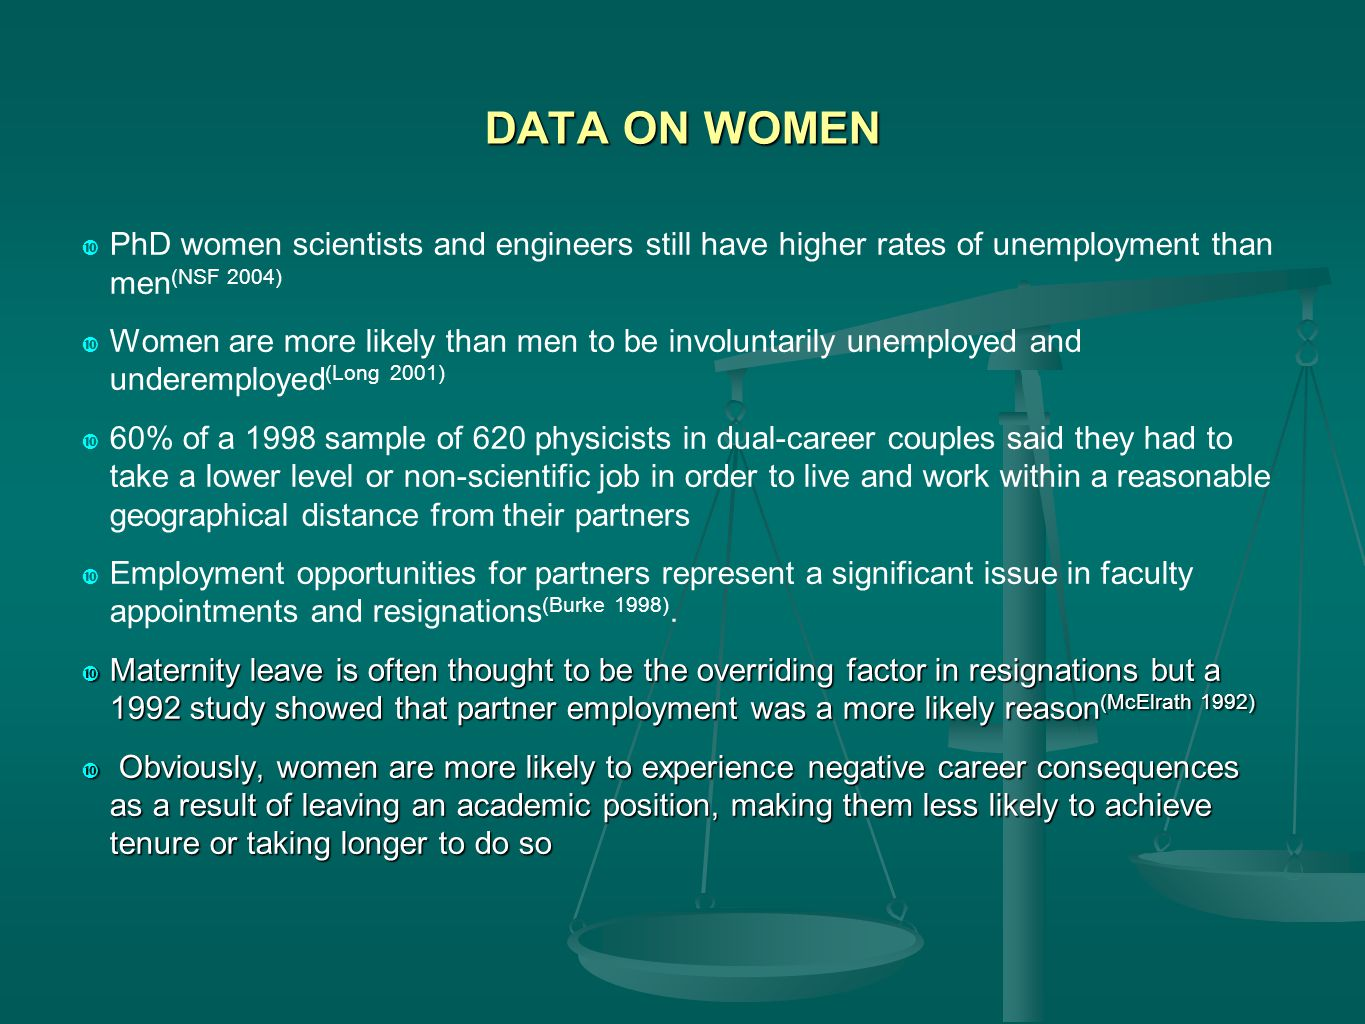 DATA ON WOMEN  PhD women scientists and engineers still have higher rates of unemployment than men (NSF 2004)  Women are more likely than men to be involuntarily unemployed and underemployed (Long 2001)  60% of a 1998 sample of 620 physicists in dual-career couples said they had to take a lower level or non-scientific job in order to live and work within a reasonable geographical distance from their partners  Employment opportunities for partners represent a significant issue in faculty appointments and resignations (Burke 1998).